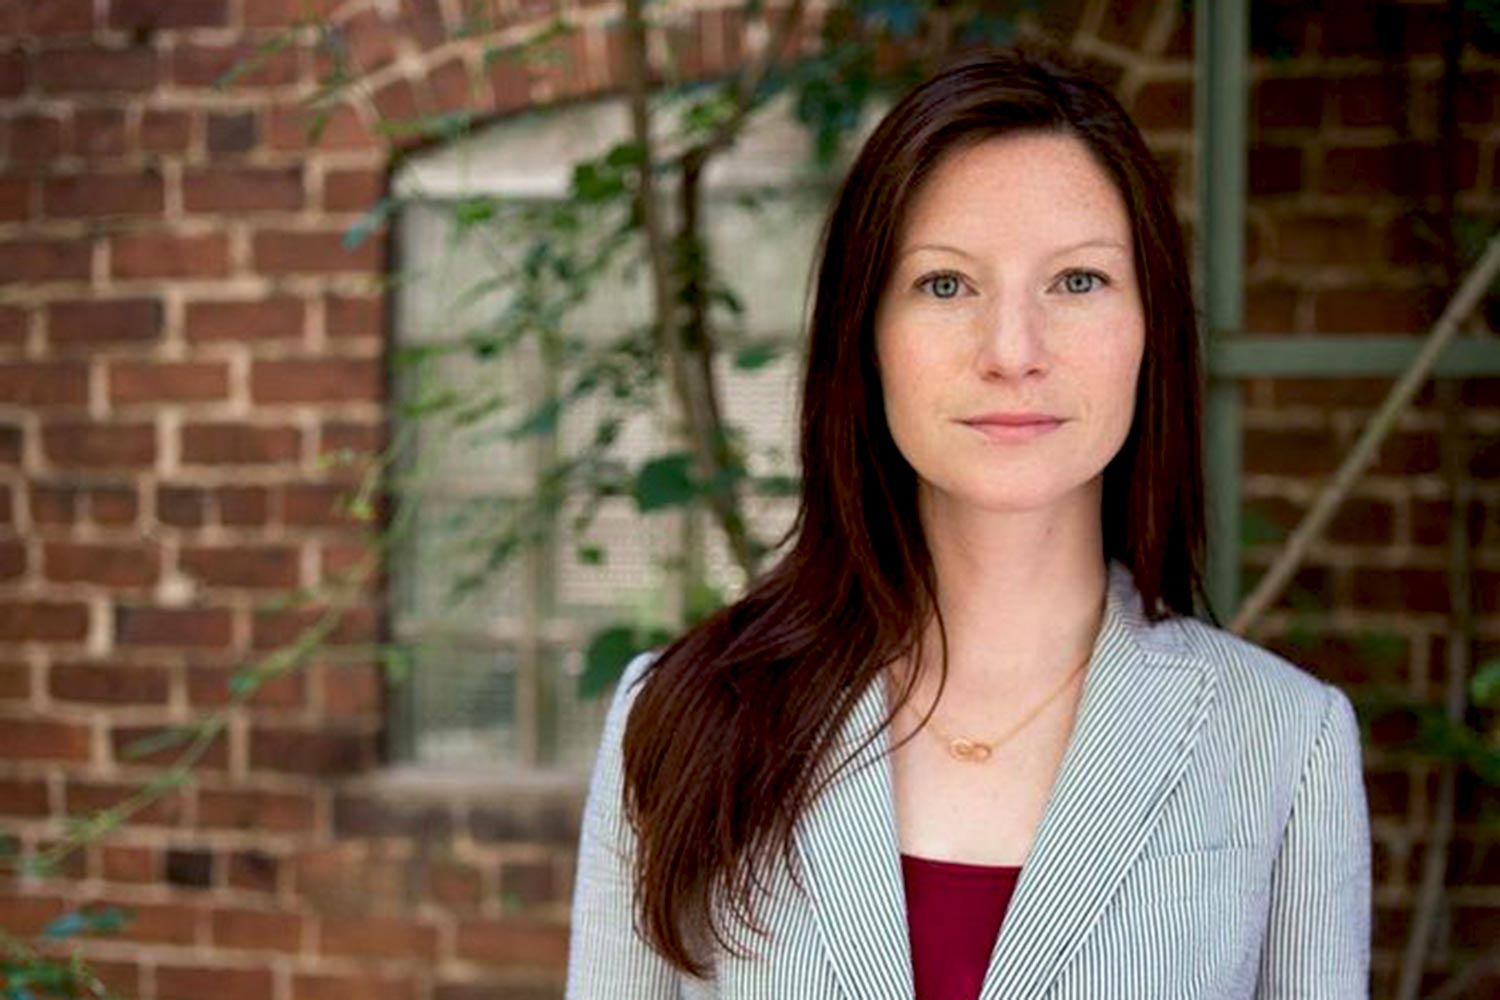 Batten professor Christine Mahoney received the Public Impact-Focused Research Award for her work supporting the rights of the displaced locally, nationally and globally. (Photo by Dan Addison, University Communications)